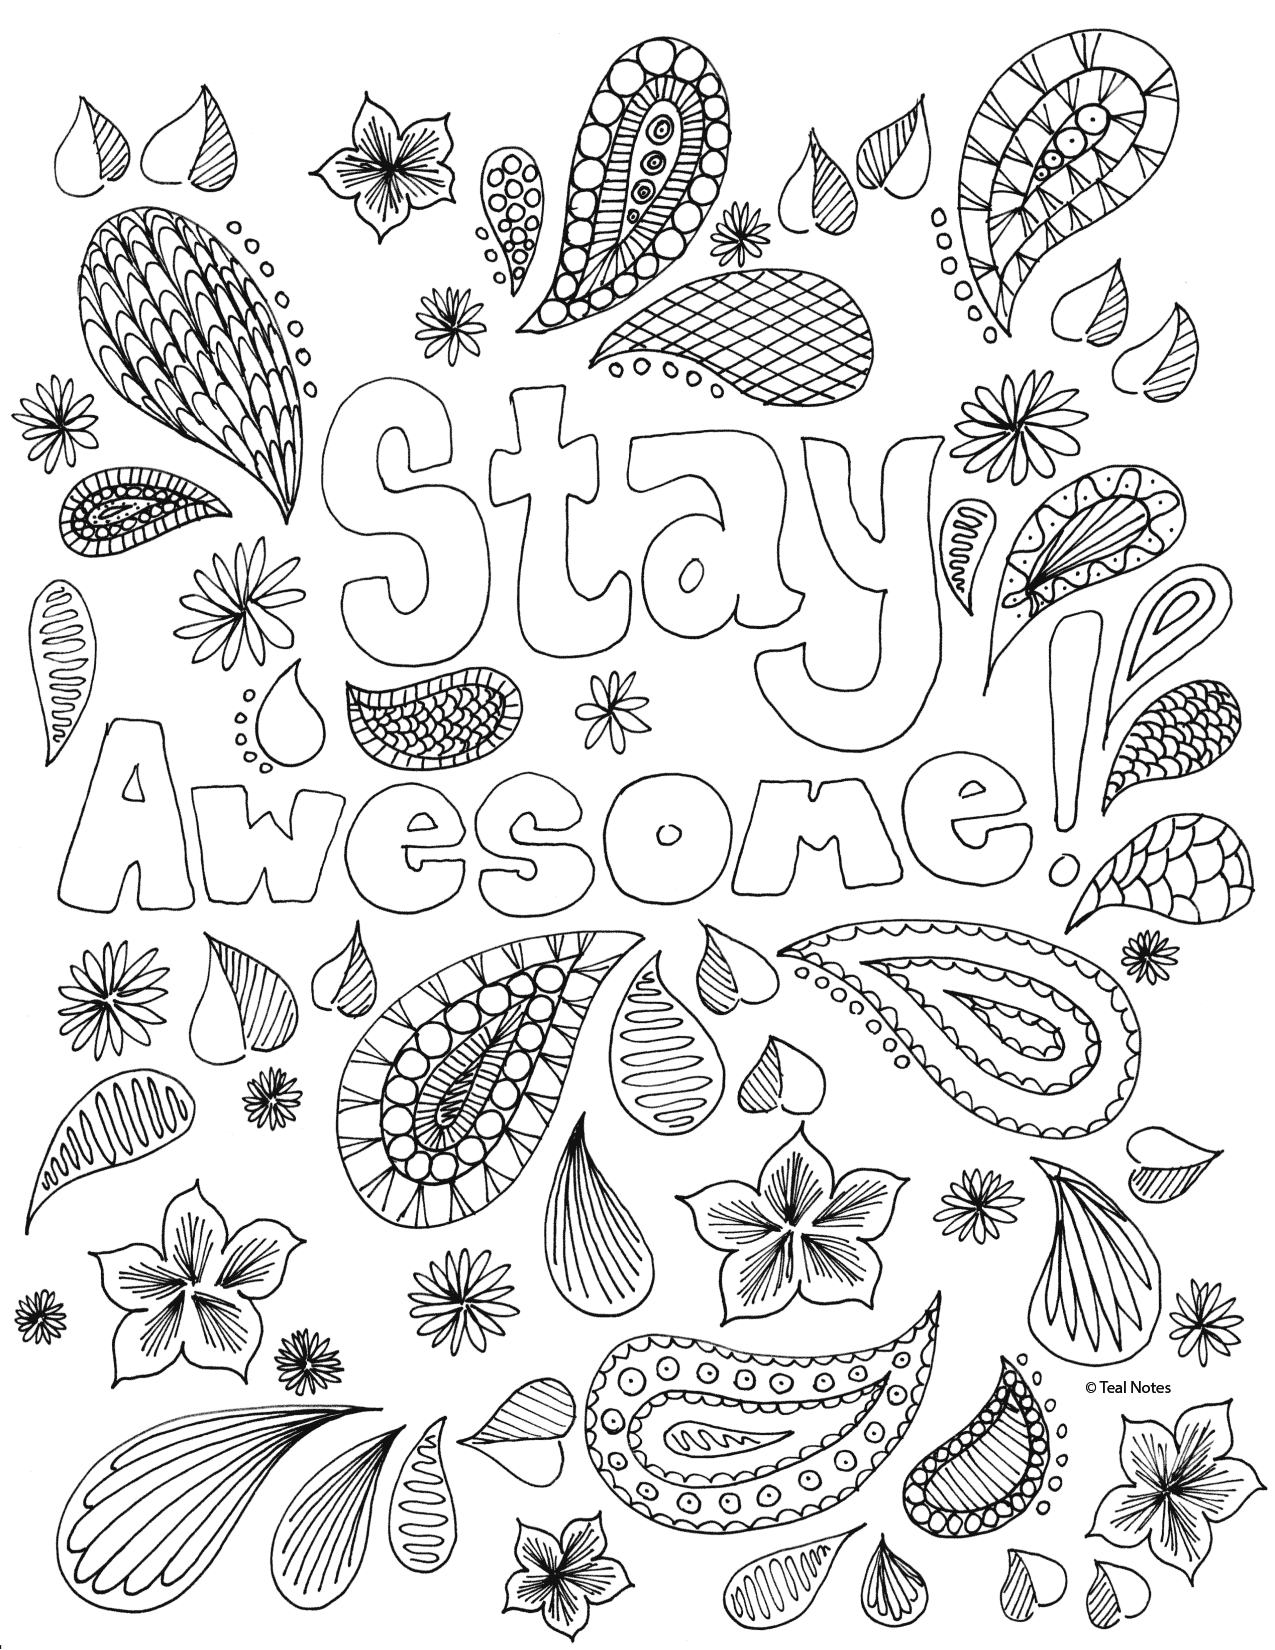 free quote coloring page for self care